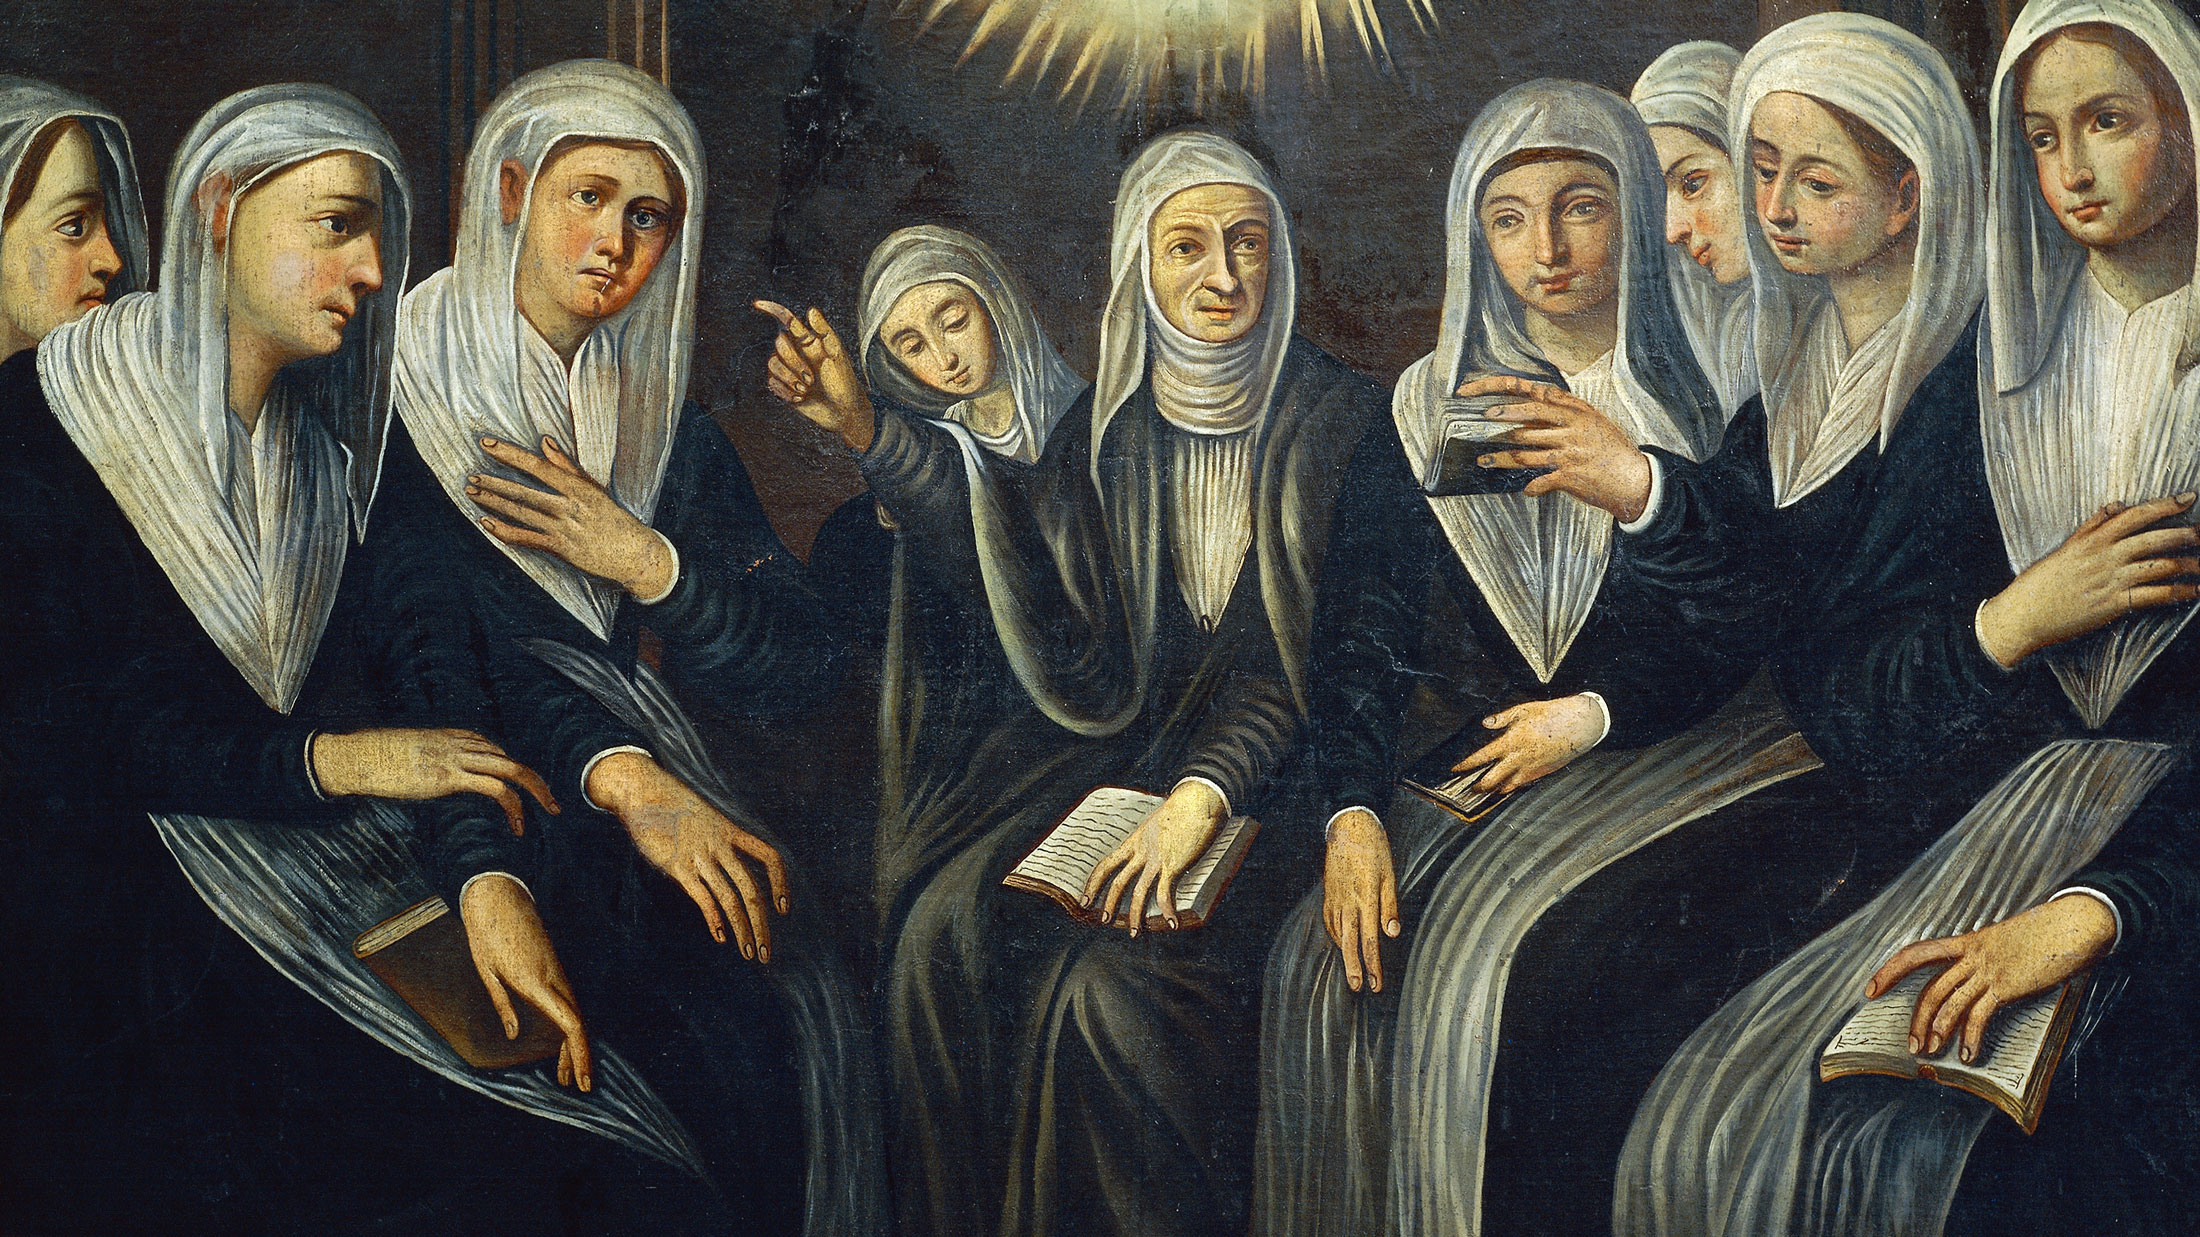 When Women Became Nuns to Get a Good Education